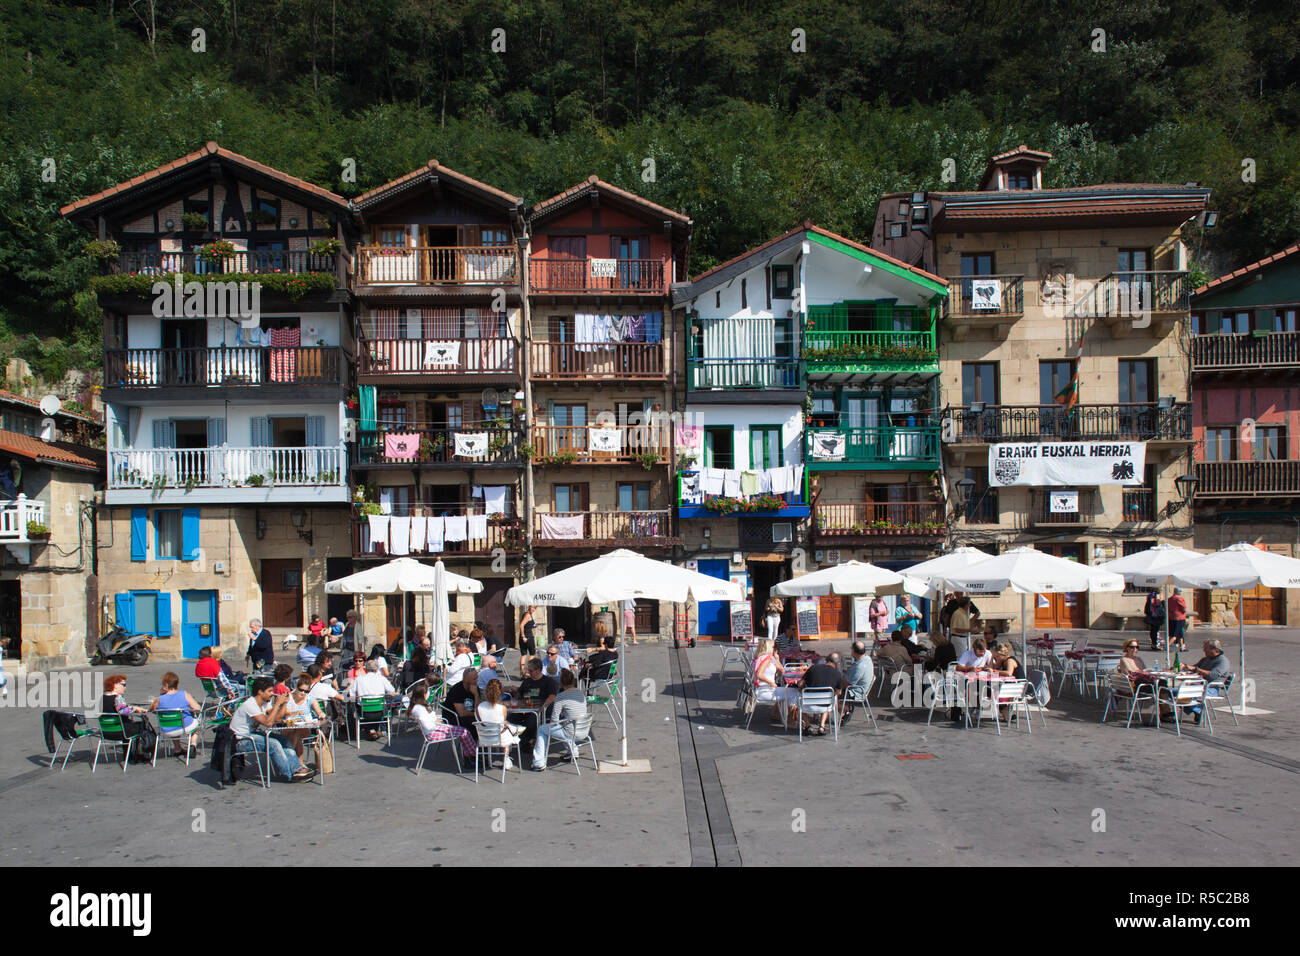 Spain, Basque Country Region, Guipuzcoa Province, Pasaia, Village of Pasai Donibane, small fishing port detail - Stock Image